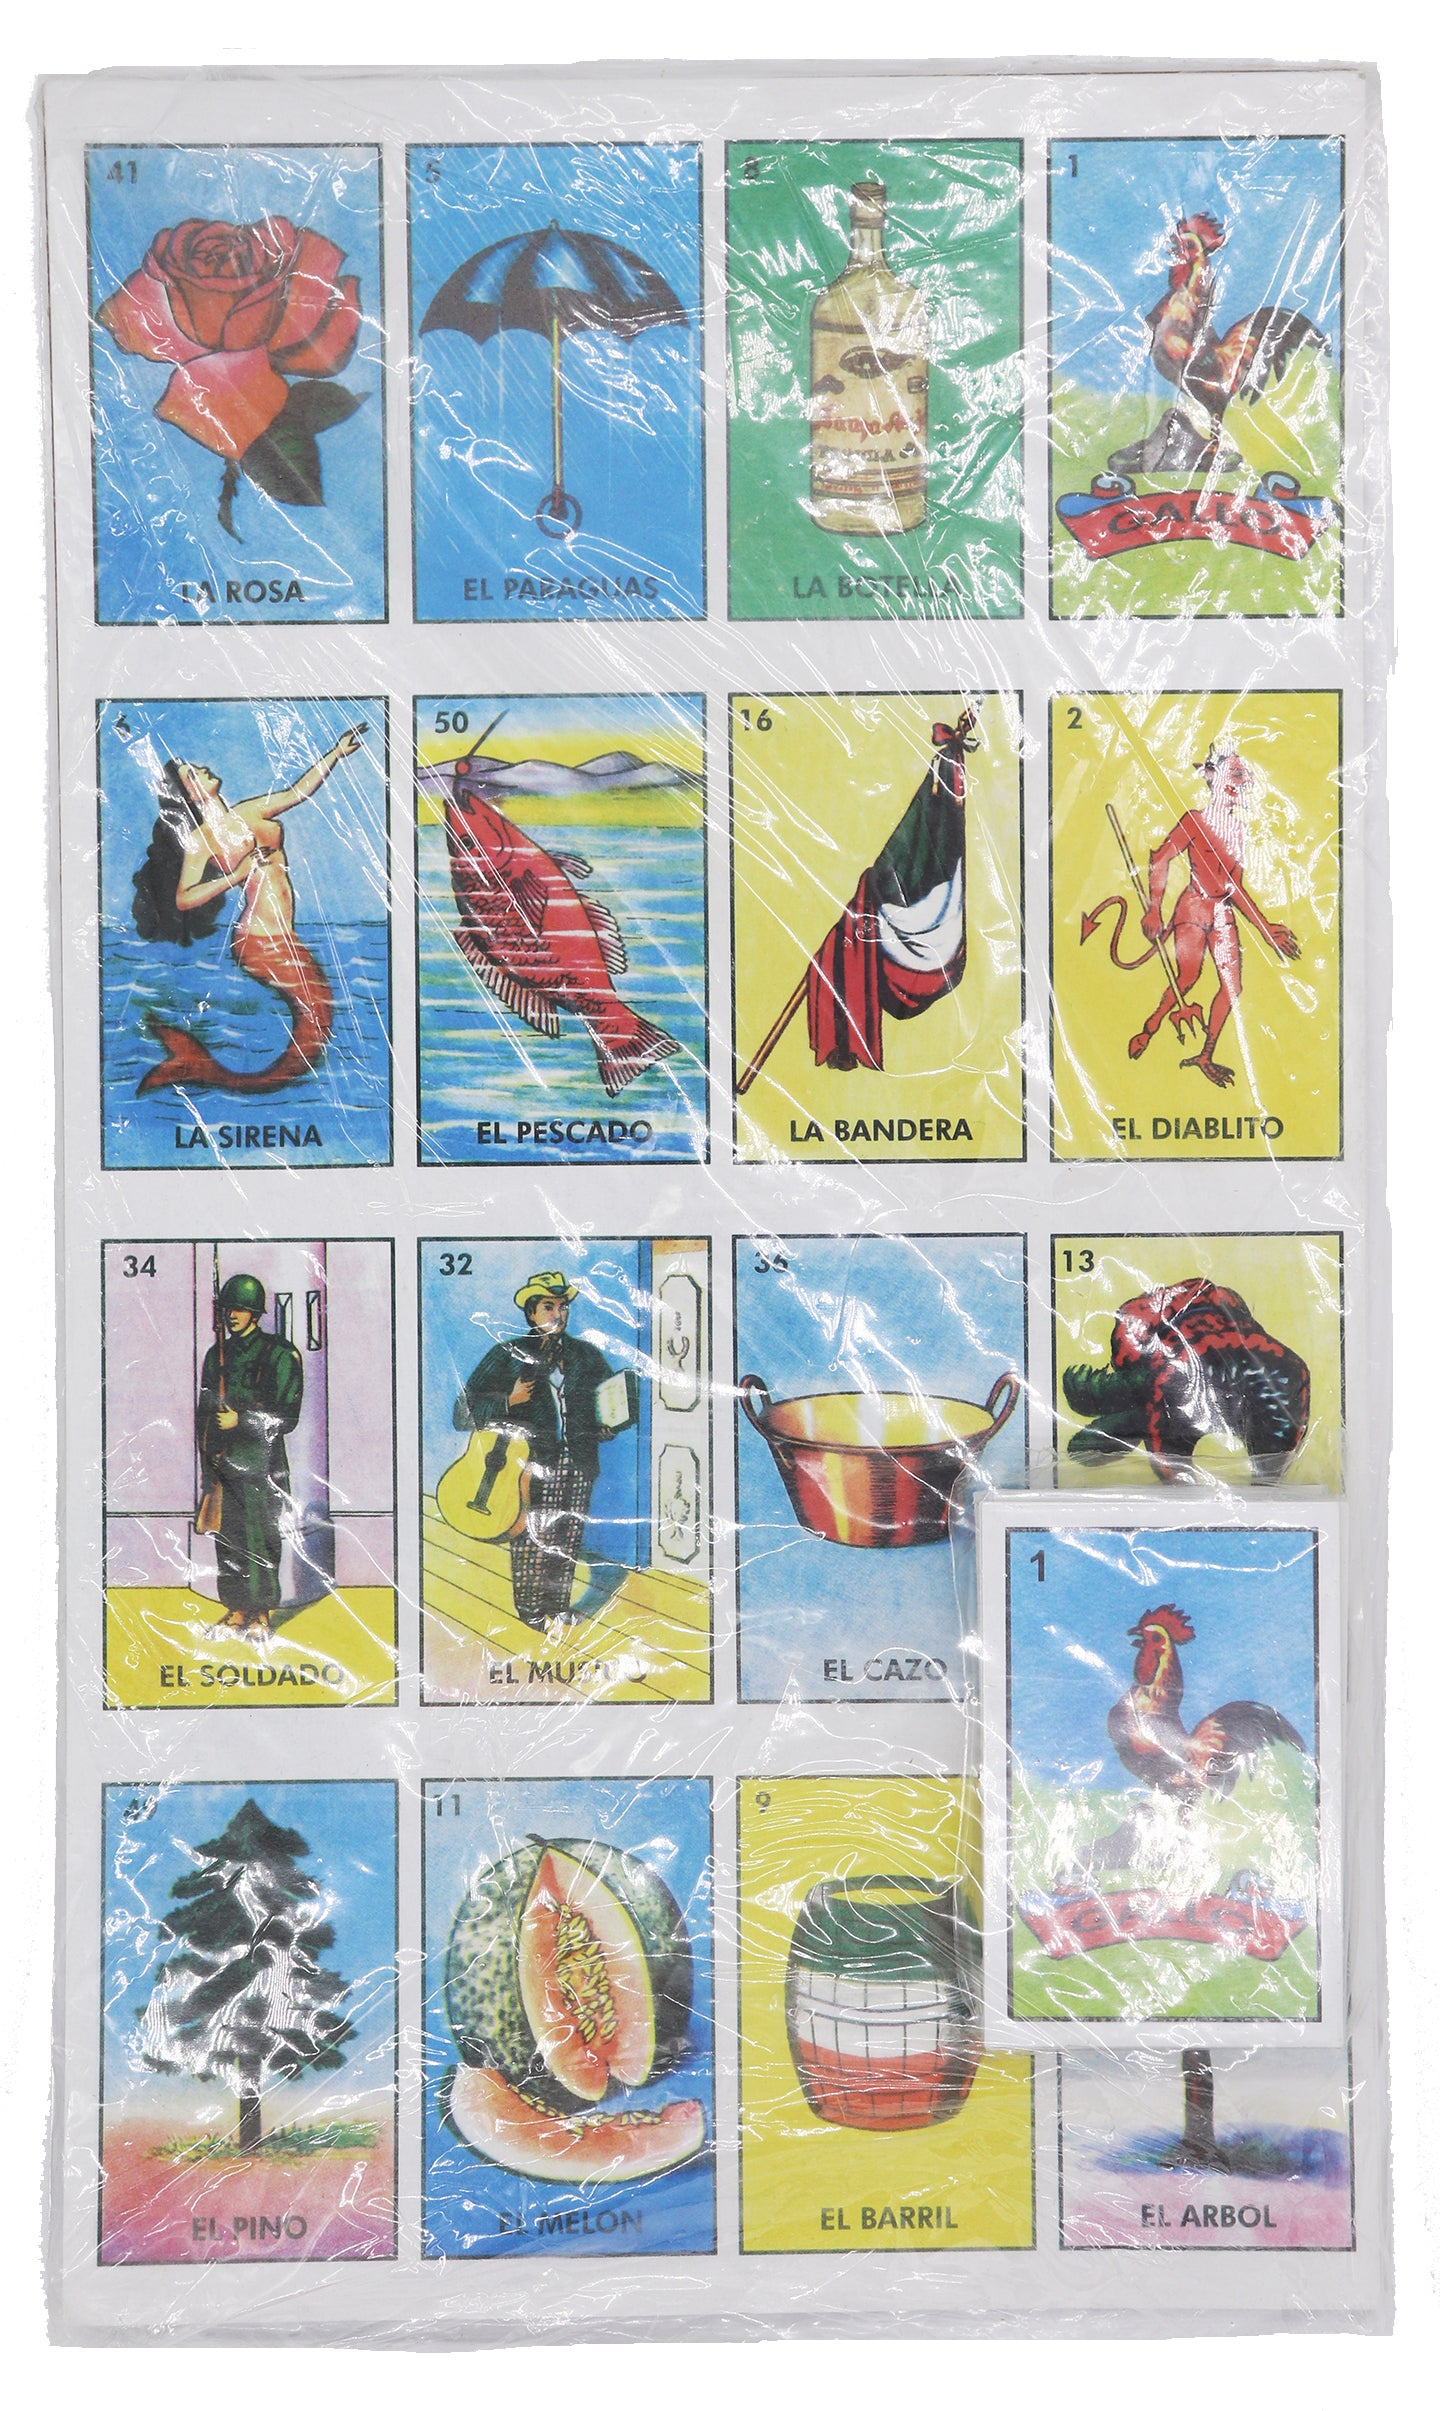 Packaging of jumbo Mexican bingo card game Loteria with several gorgeous colorful prints of different cards and characters